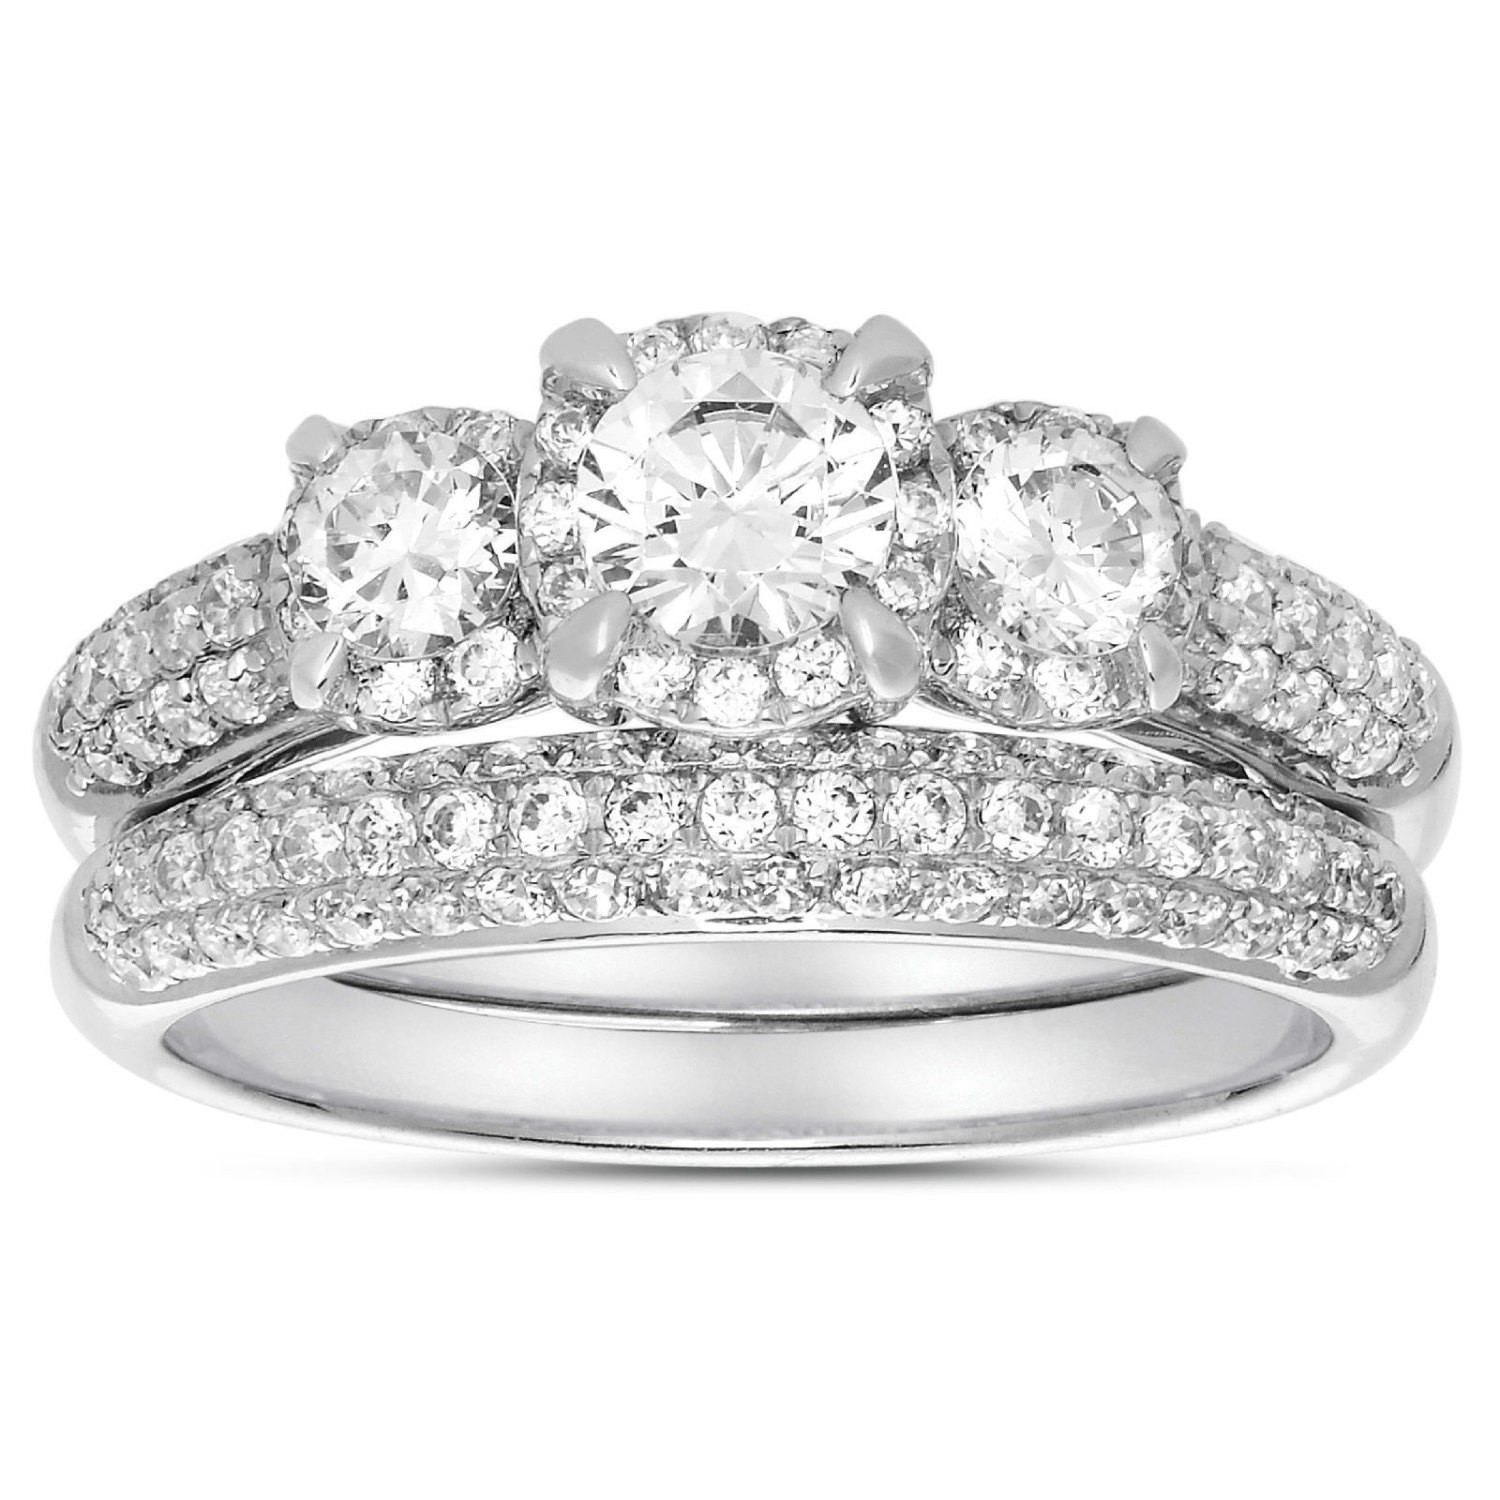 2 Carat Three Stone Trilogy Round Diamond Wedding Ring Set in White